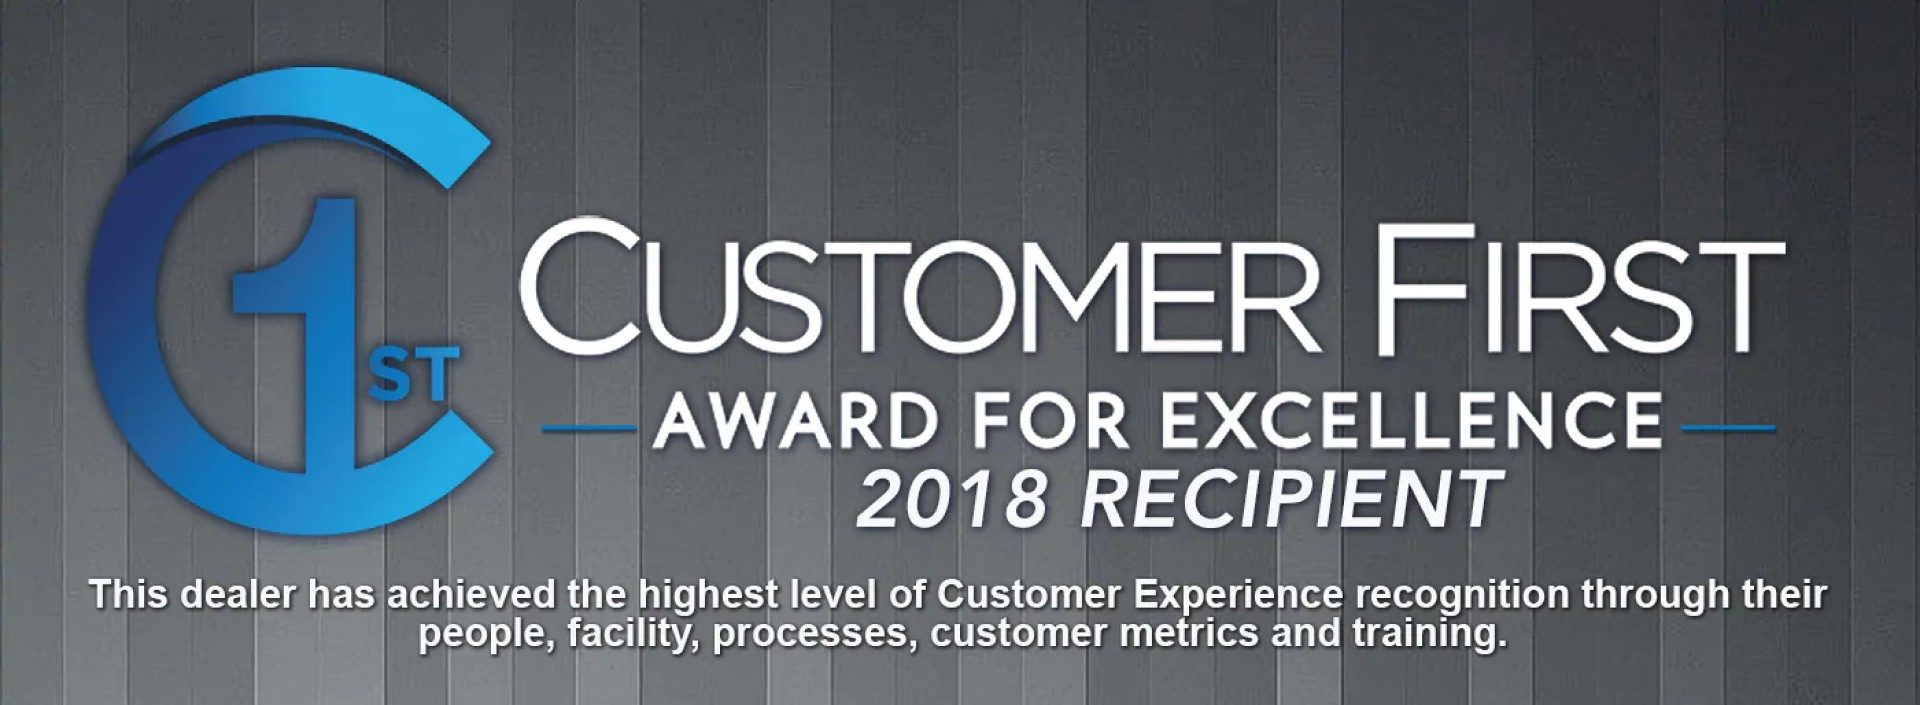 Customer First - Award for Excellence 2018 Recipient